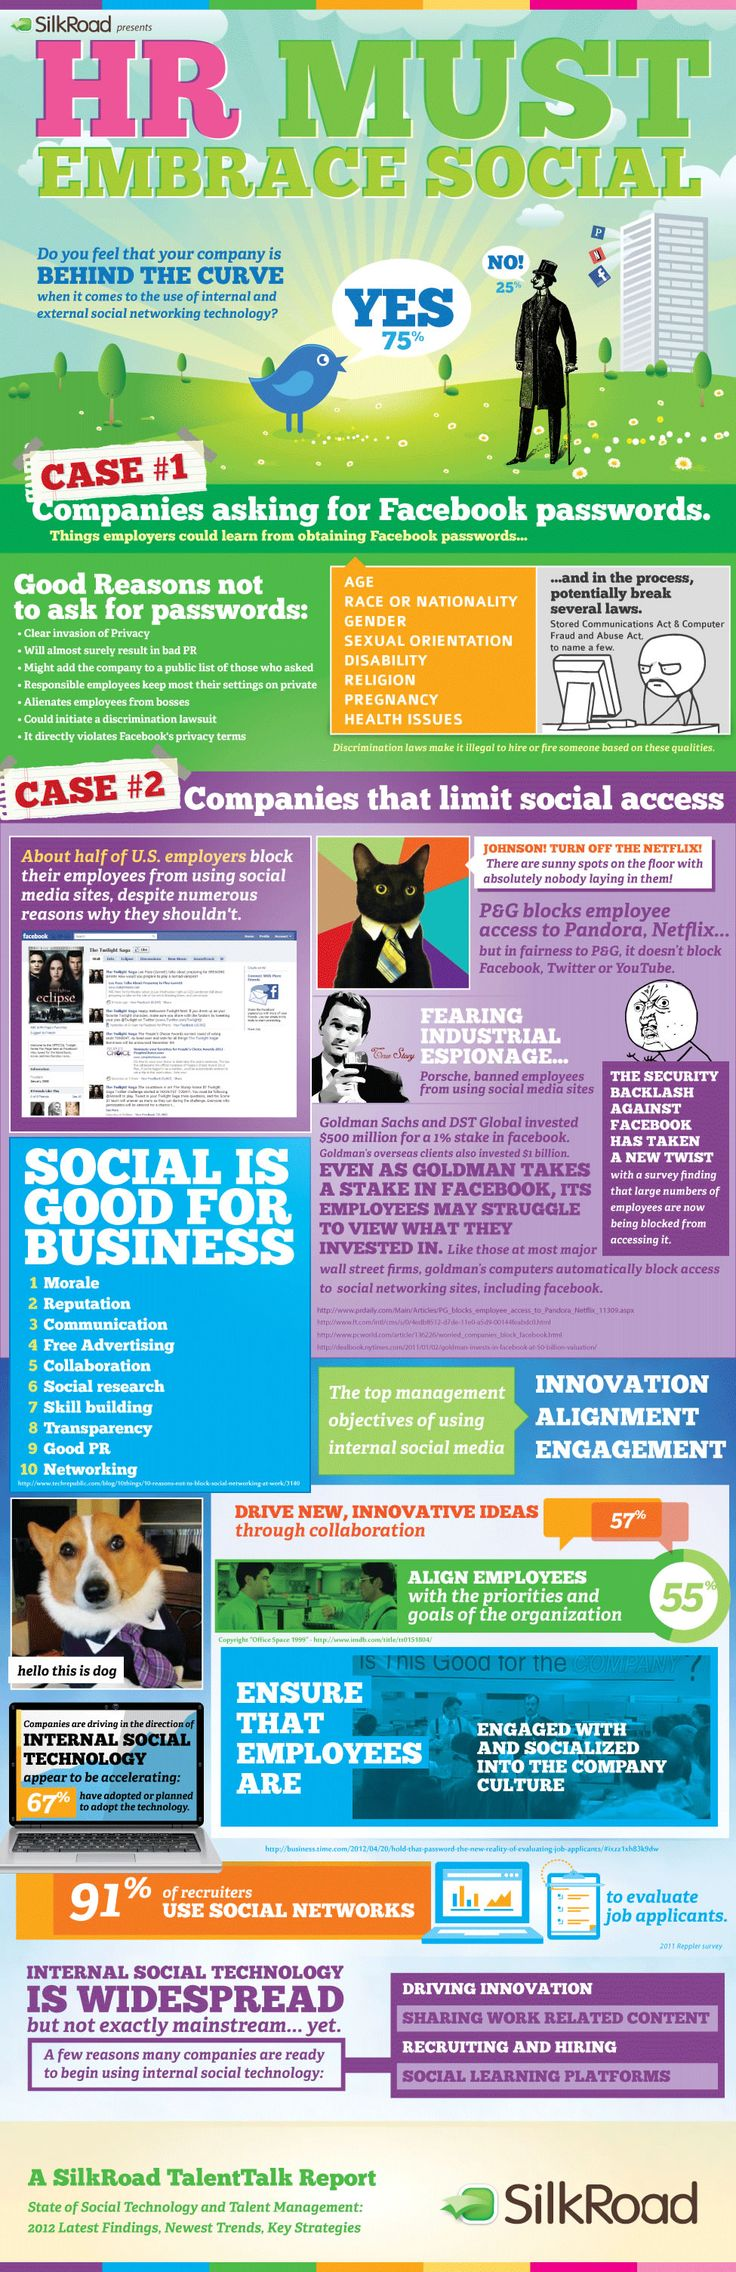 "Why HR Must Embrace Social Media- Social technology is one of the hottest trends in talent management. Silkroad's ""HR Must Embrace Social"" infographic touches on HR's toughest challenges with engagement, learning, recruitment, onboarding and organizational alignment. Organizations are seeking ways to harness social technology to spark innovation and motivate employees but many have yet to fully embrace it. #infographic"